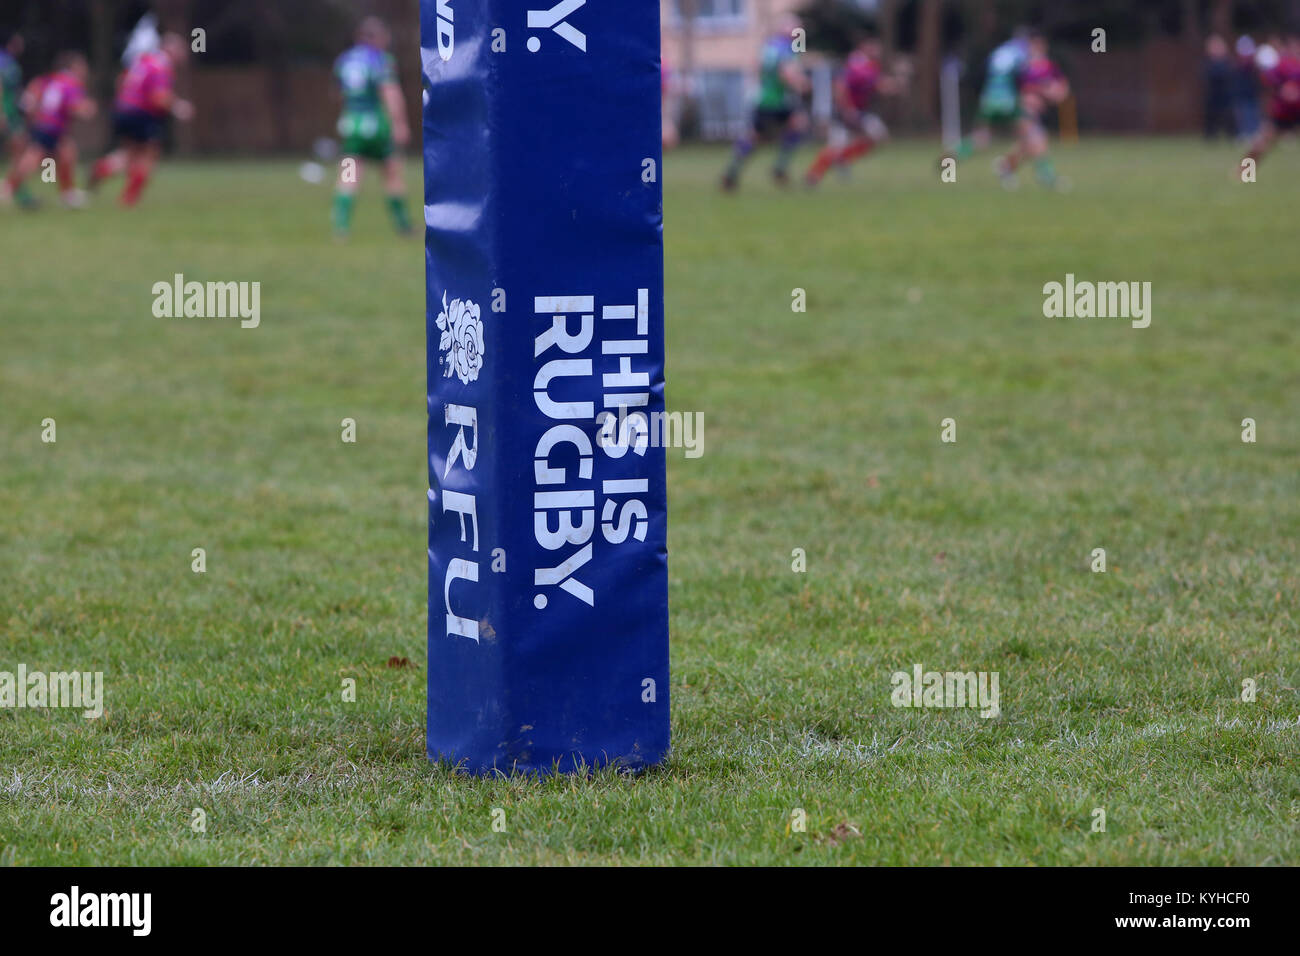 An RFU, (Rugby Football Union) 'This is Rugby' official Rugby post protector pictured during a rugby match - Stock Image